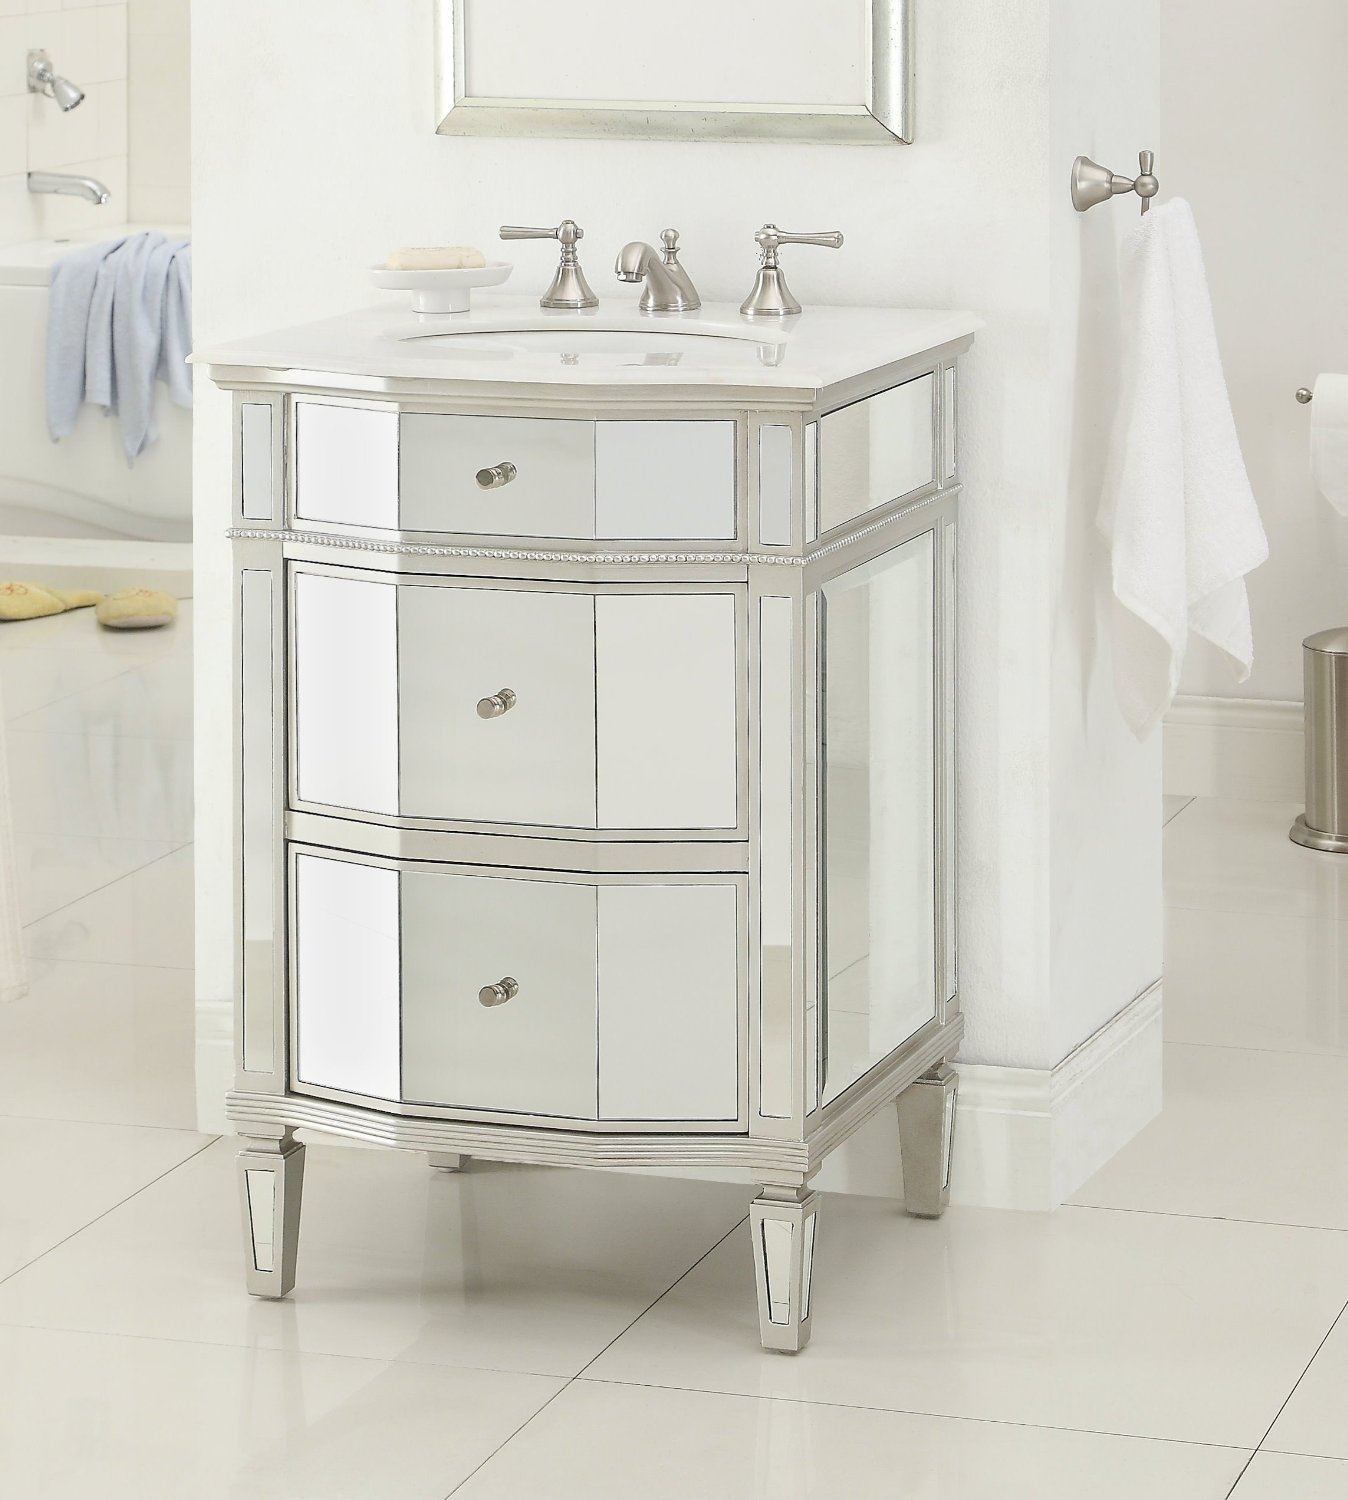 Bathroom Vanities 24 Inches And Under1348 X 1500